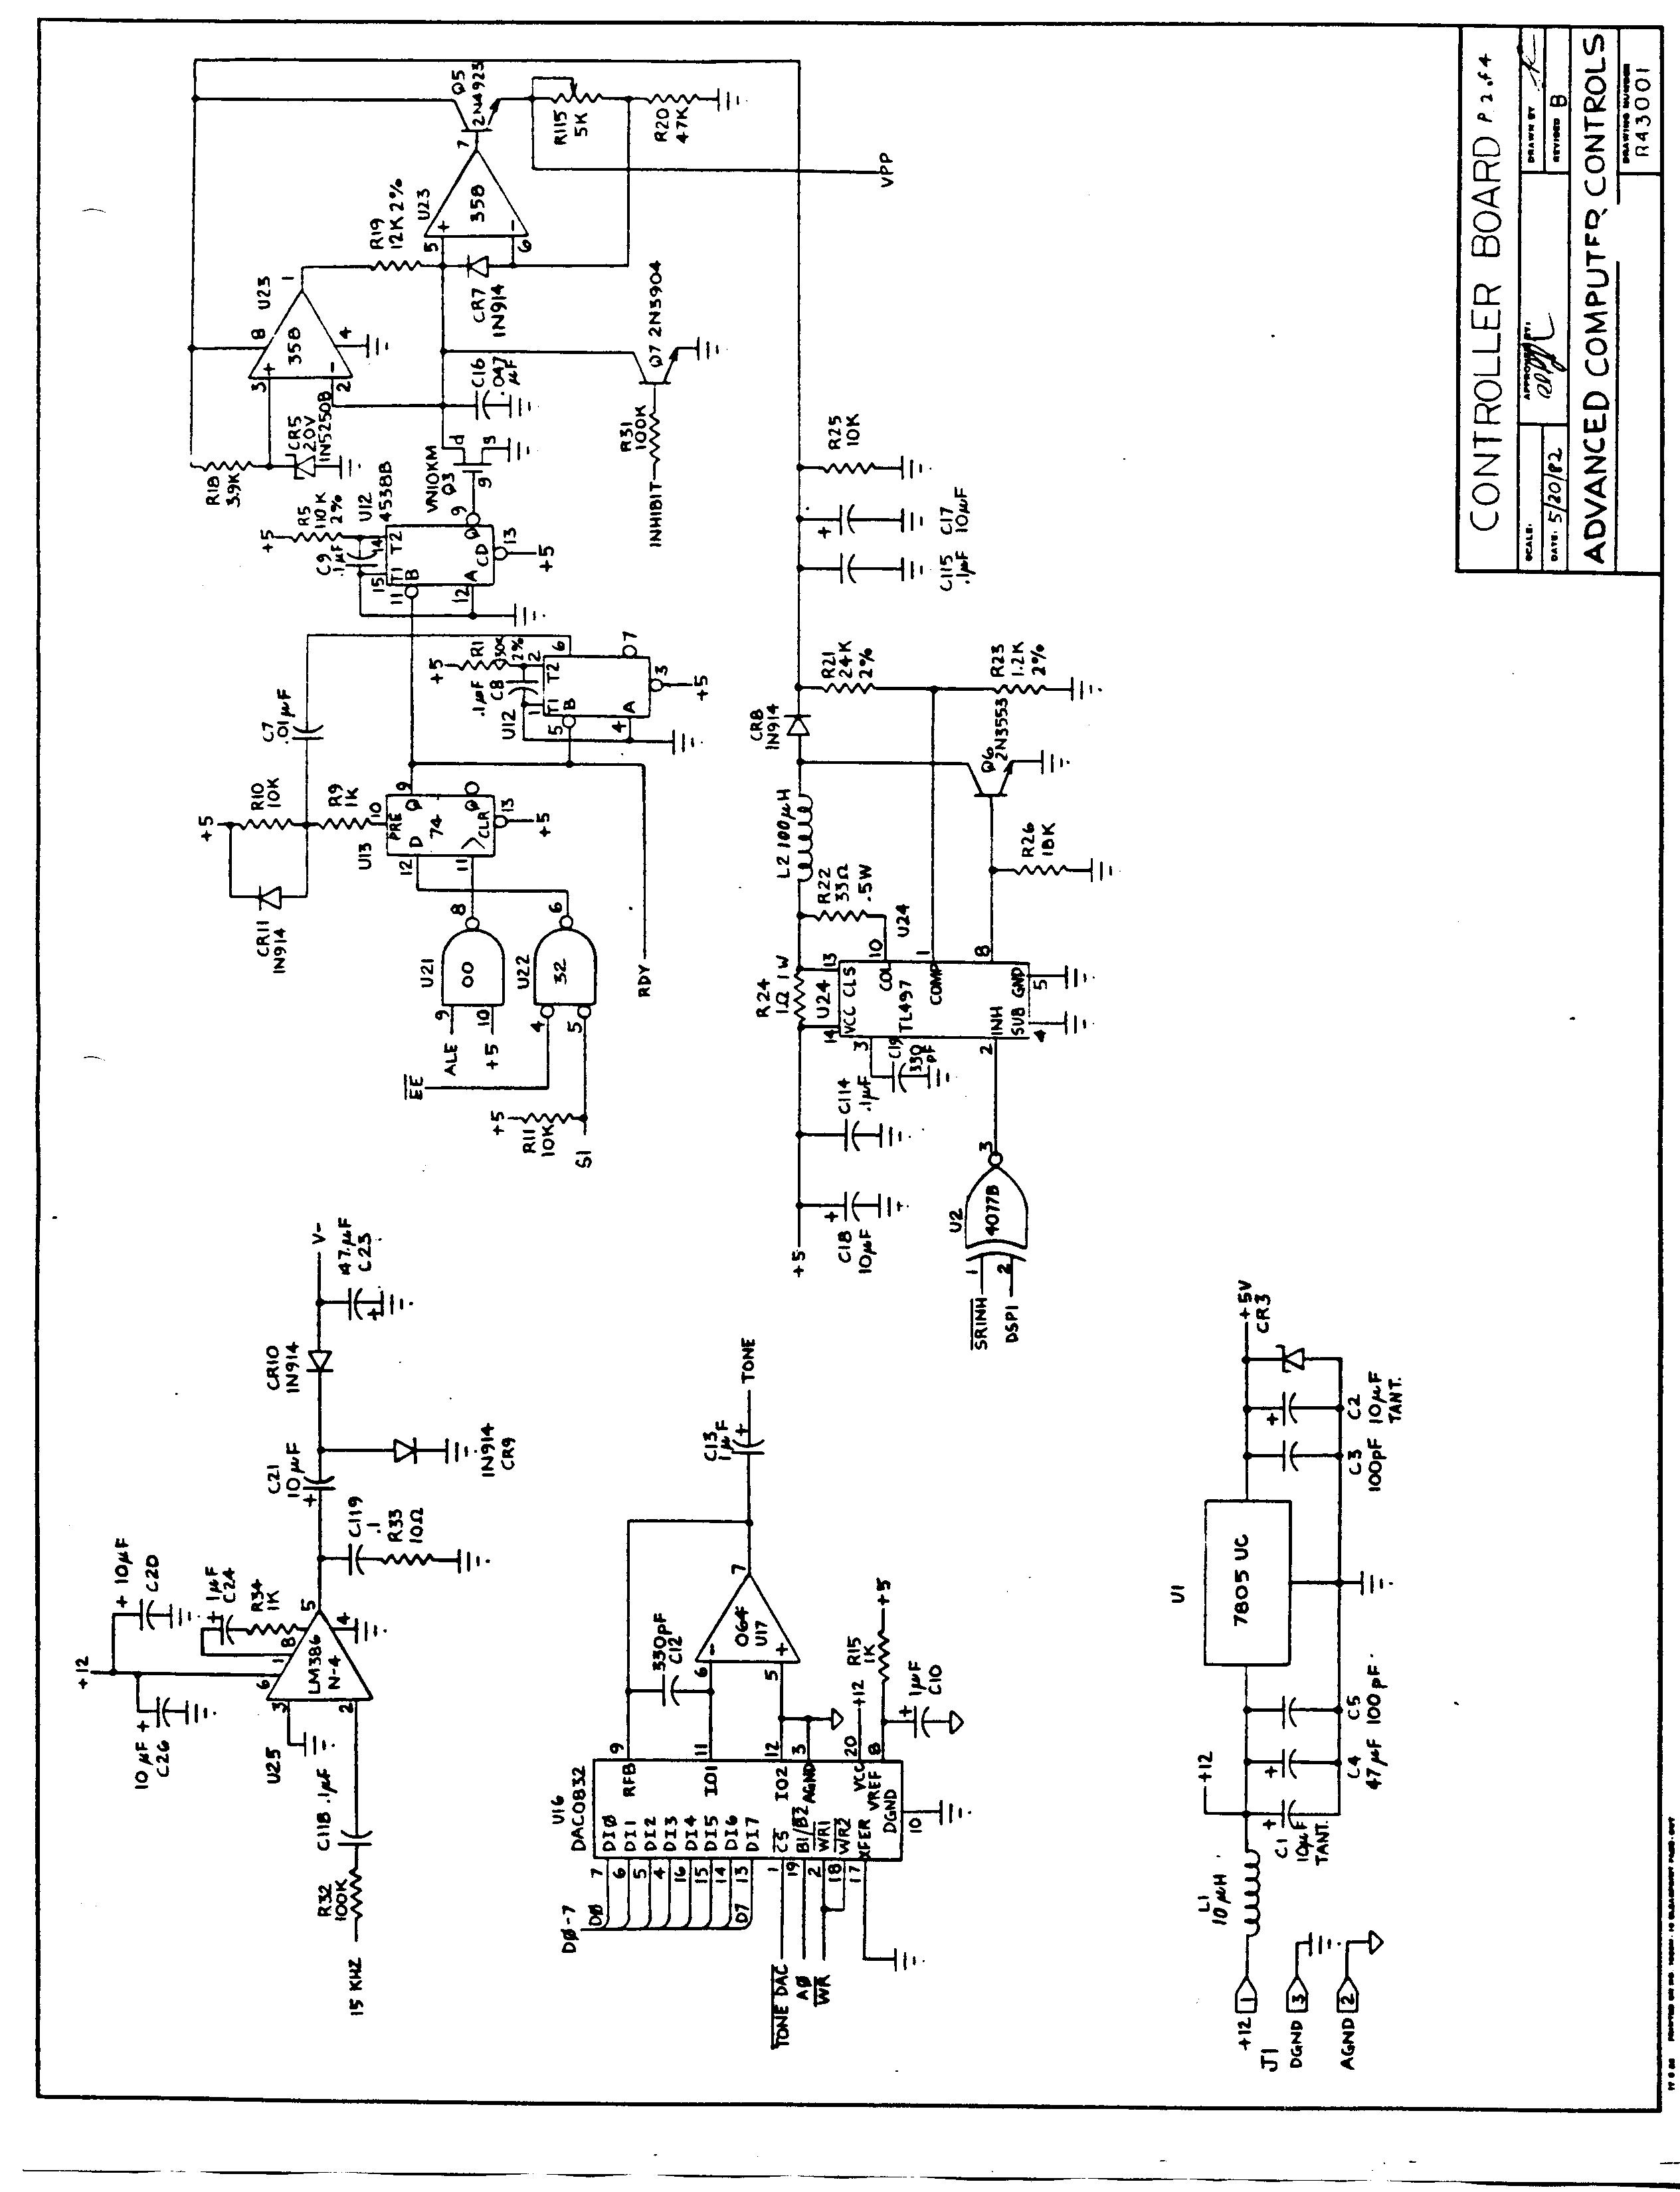 telemetry rc wiring diagram  telemetry  get free image